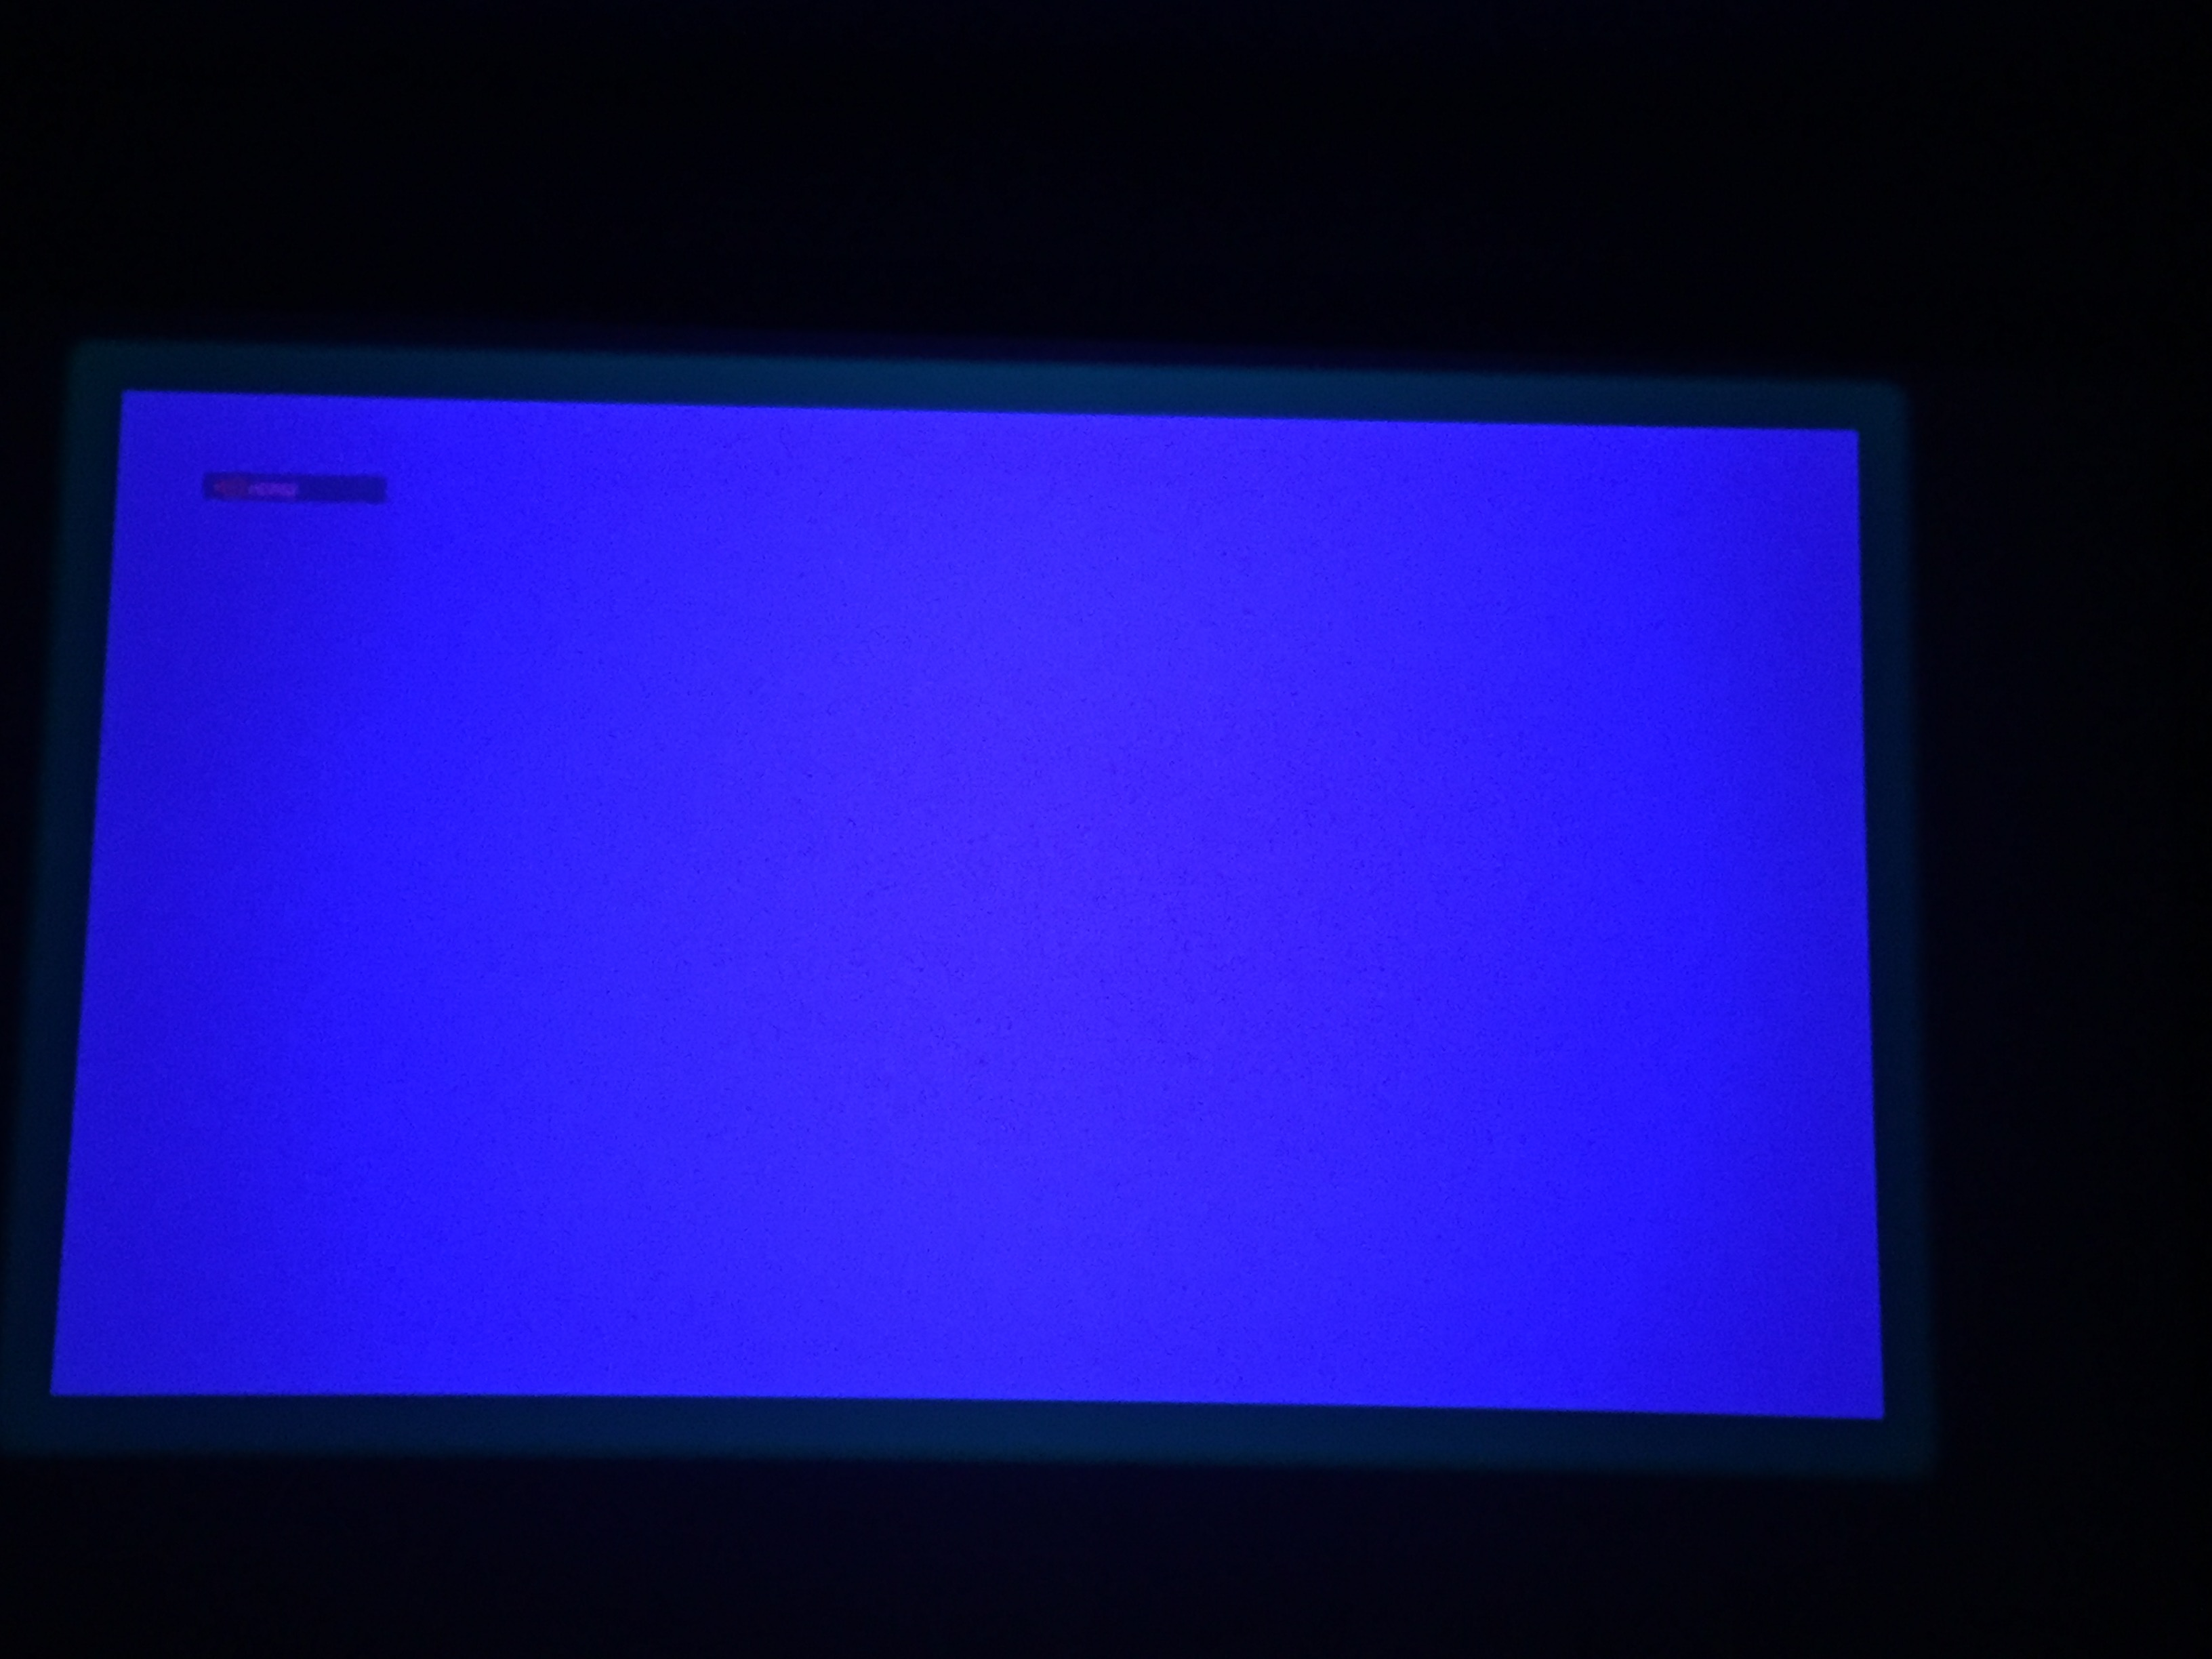 3rd screen after power on Blue.jpg